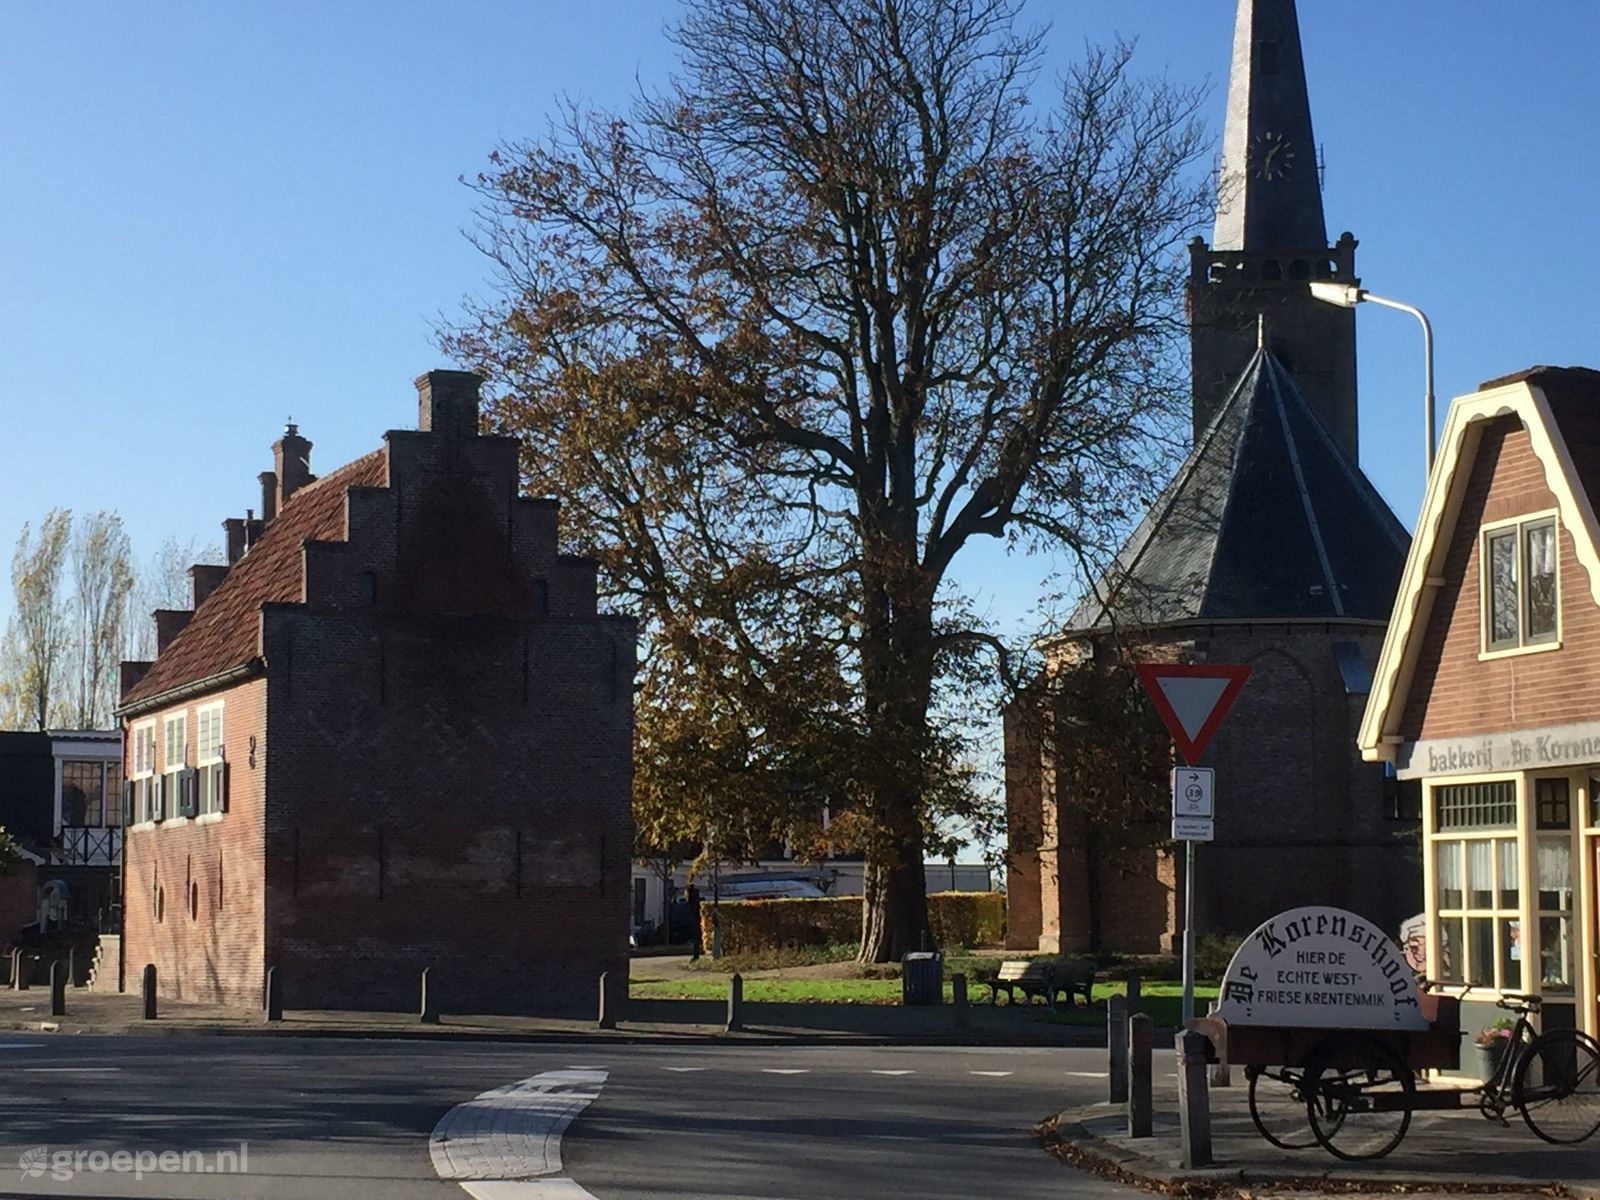 Group accommodation Spanbroek